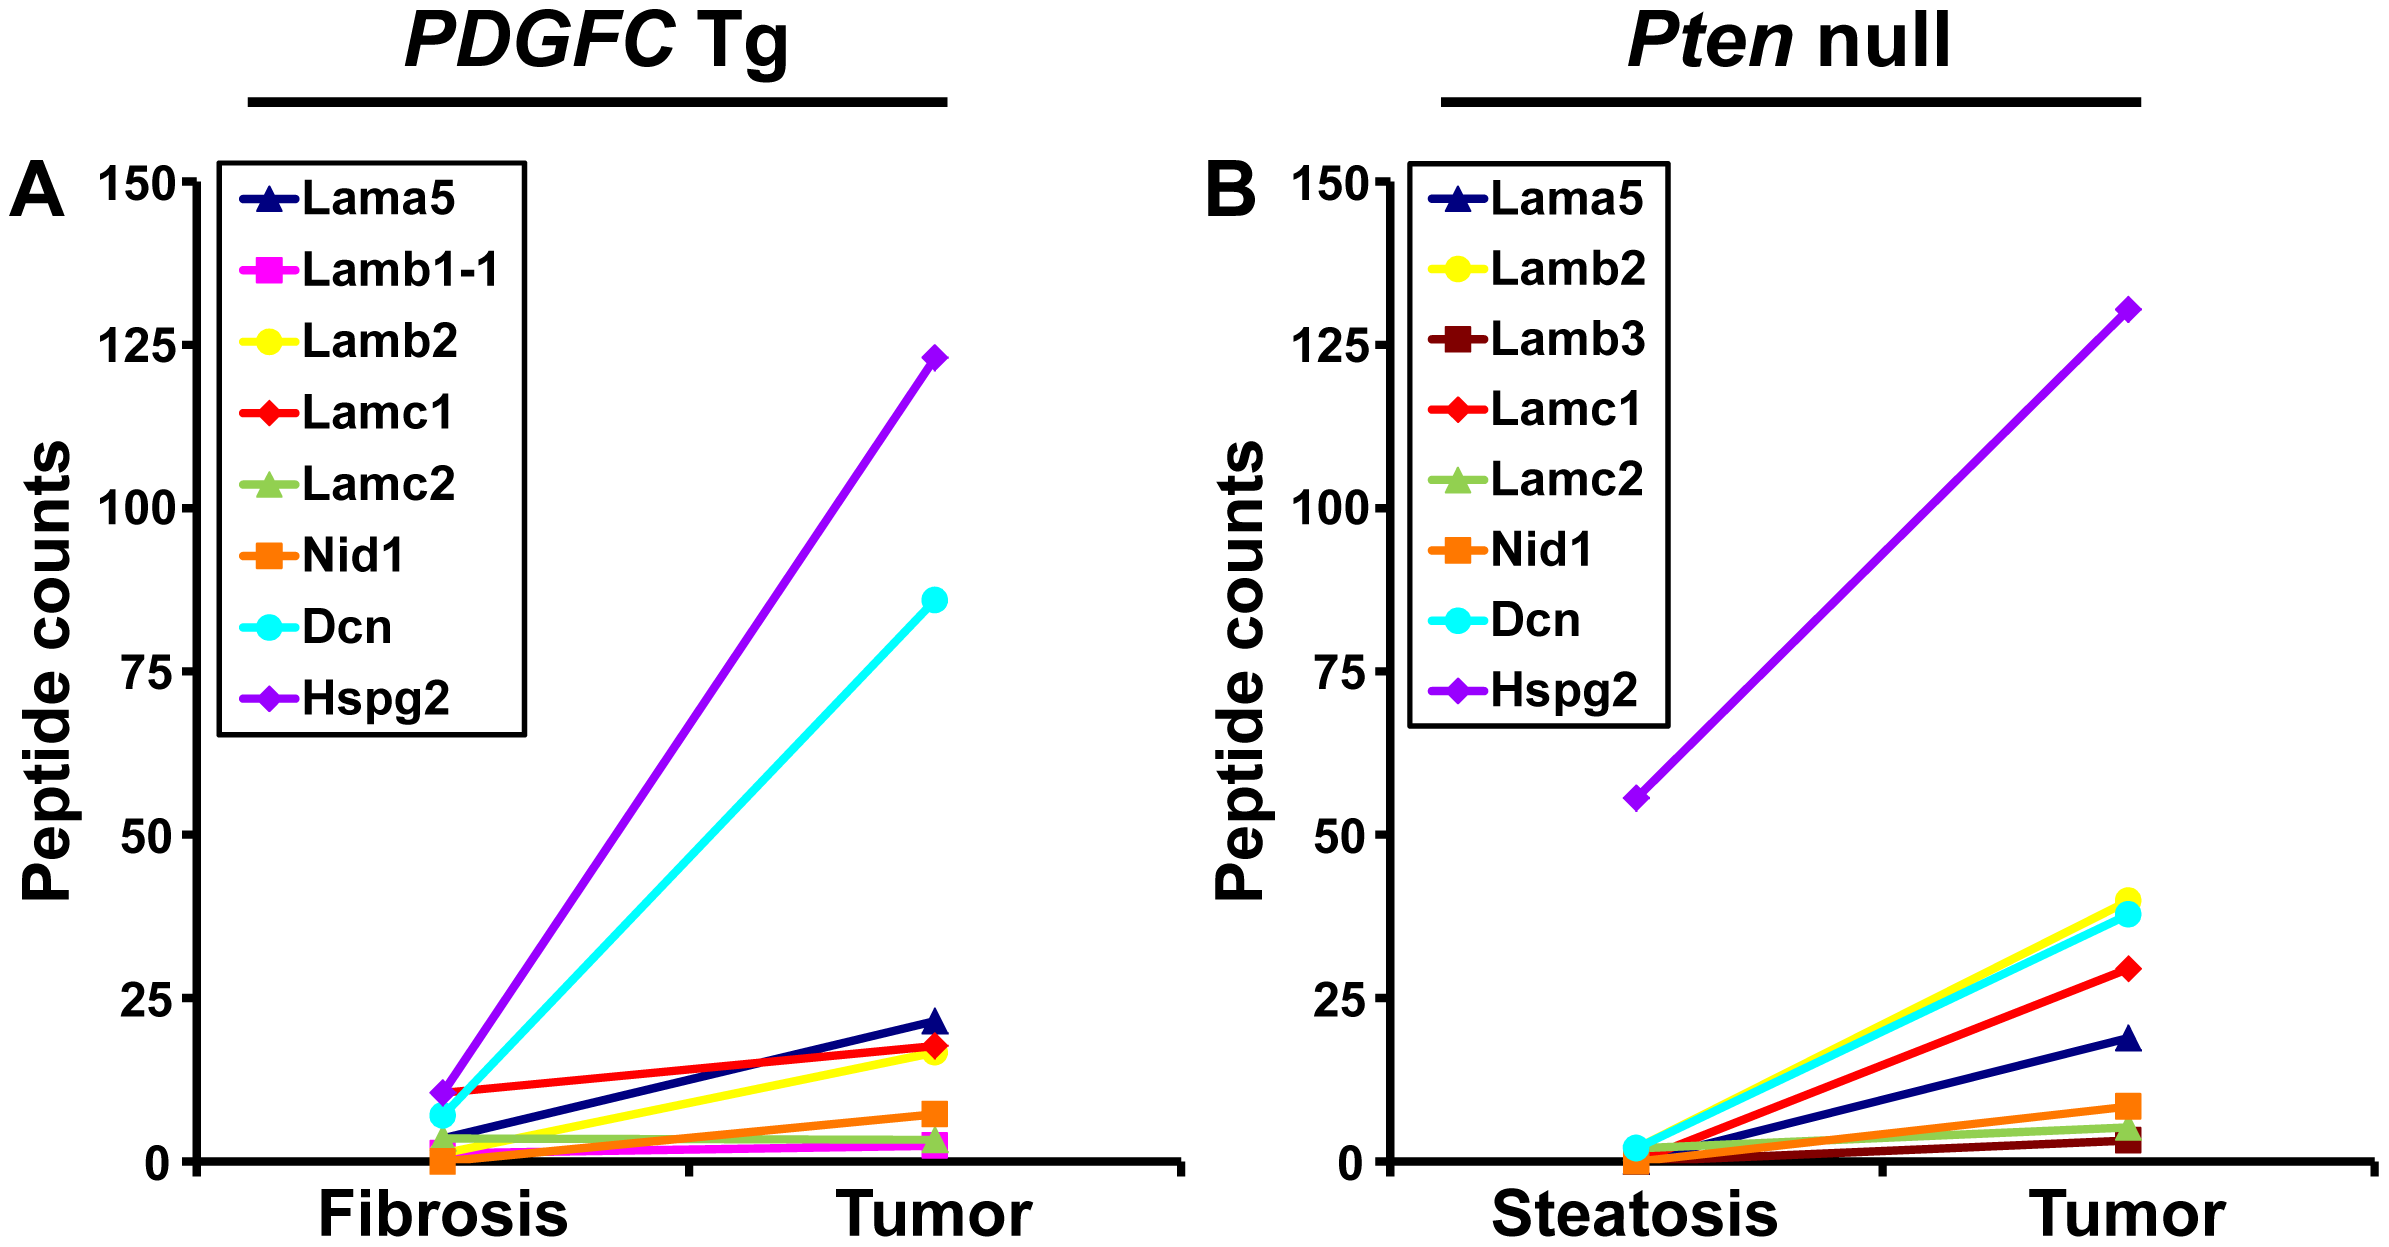 Non-collagenous ECM proteins up-regulated in <i>PDGFC</i> Tg and <i>Pten</i> null tumors.